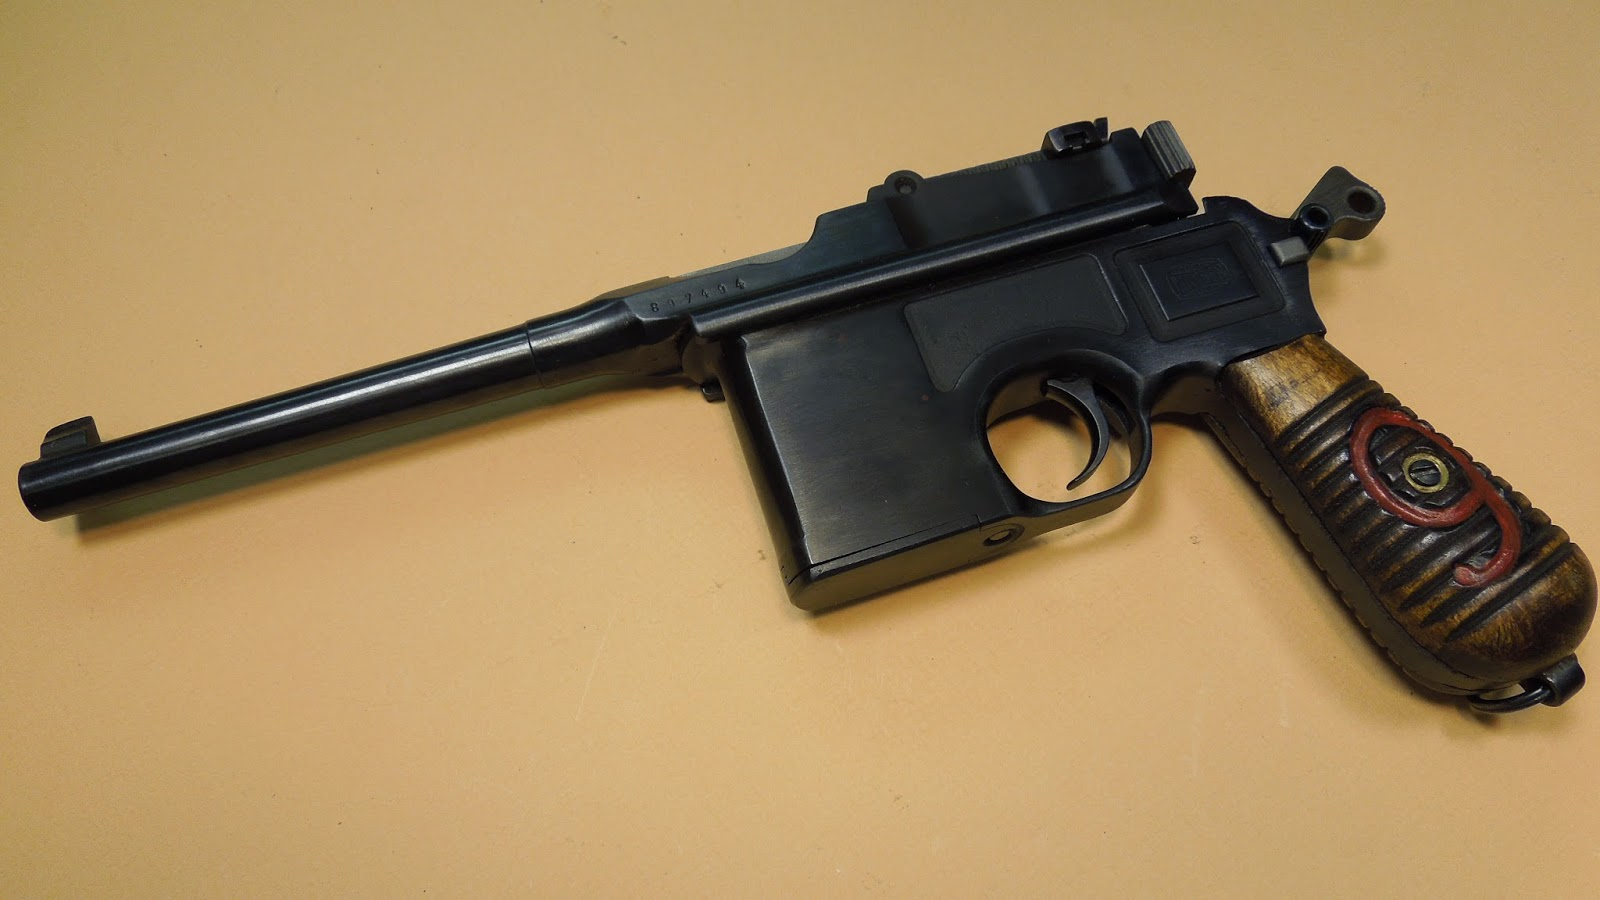 Nictaylor S R Amp R Review Amp Recommendations Mauser 9mm C96